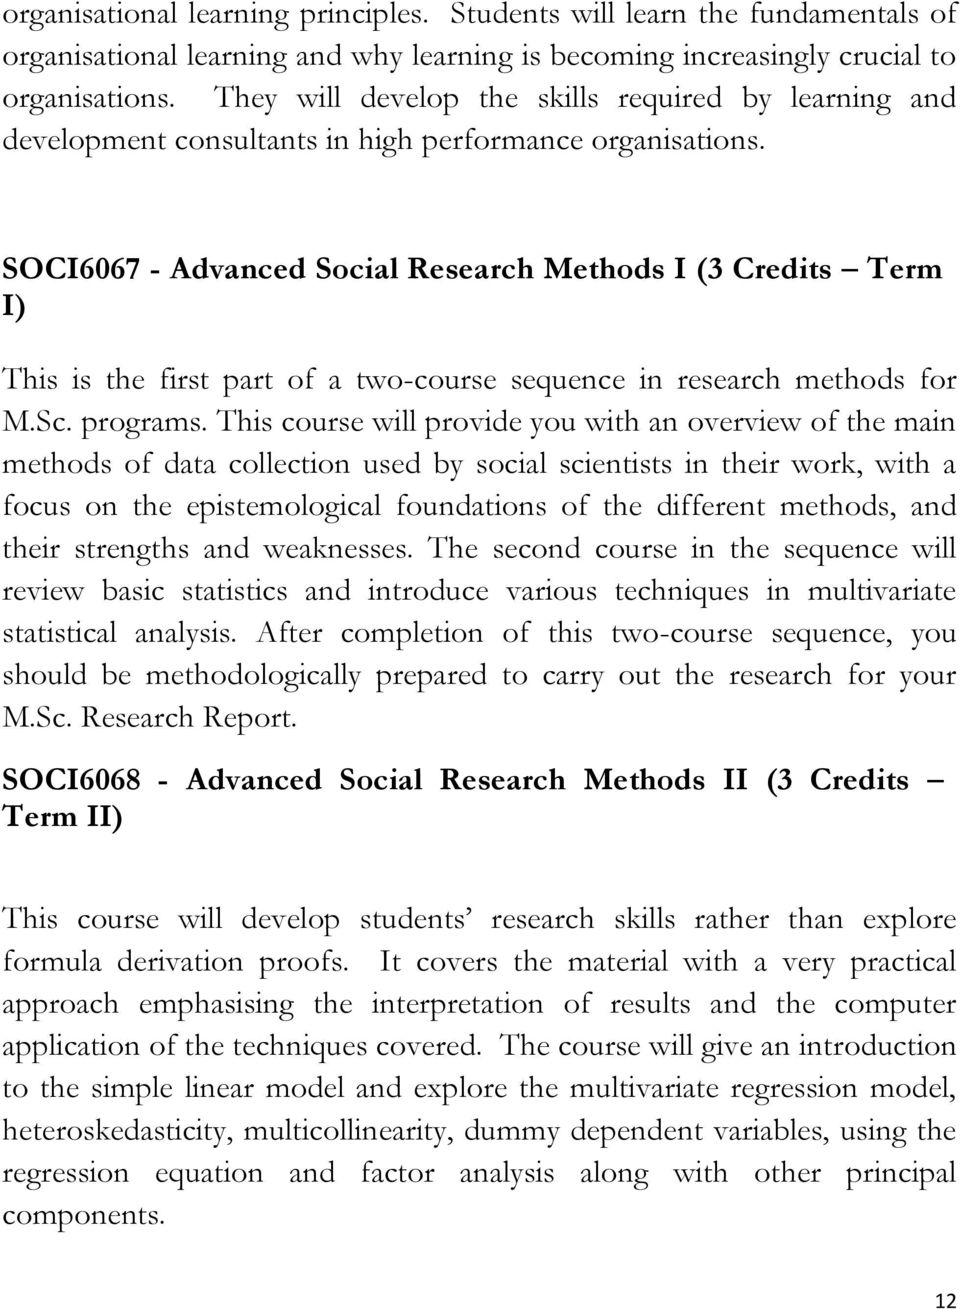 SOCI6067 - Advanced Social Research Methods I (3 Credits Term I) This is the first part of a two-course sequence in research methods for M.Sc. programs.